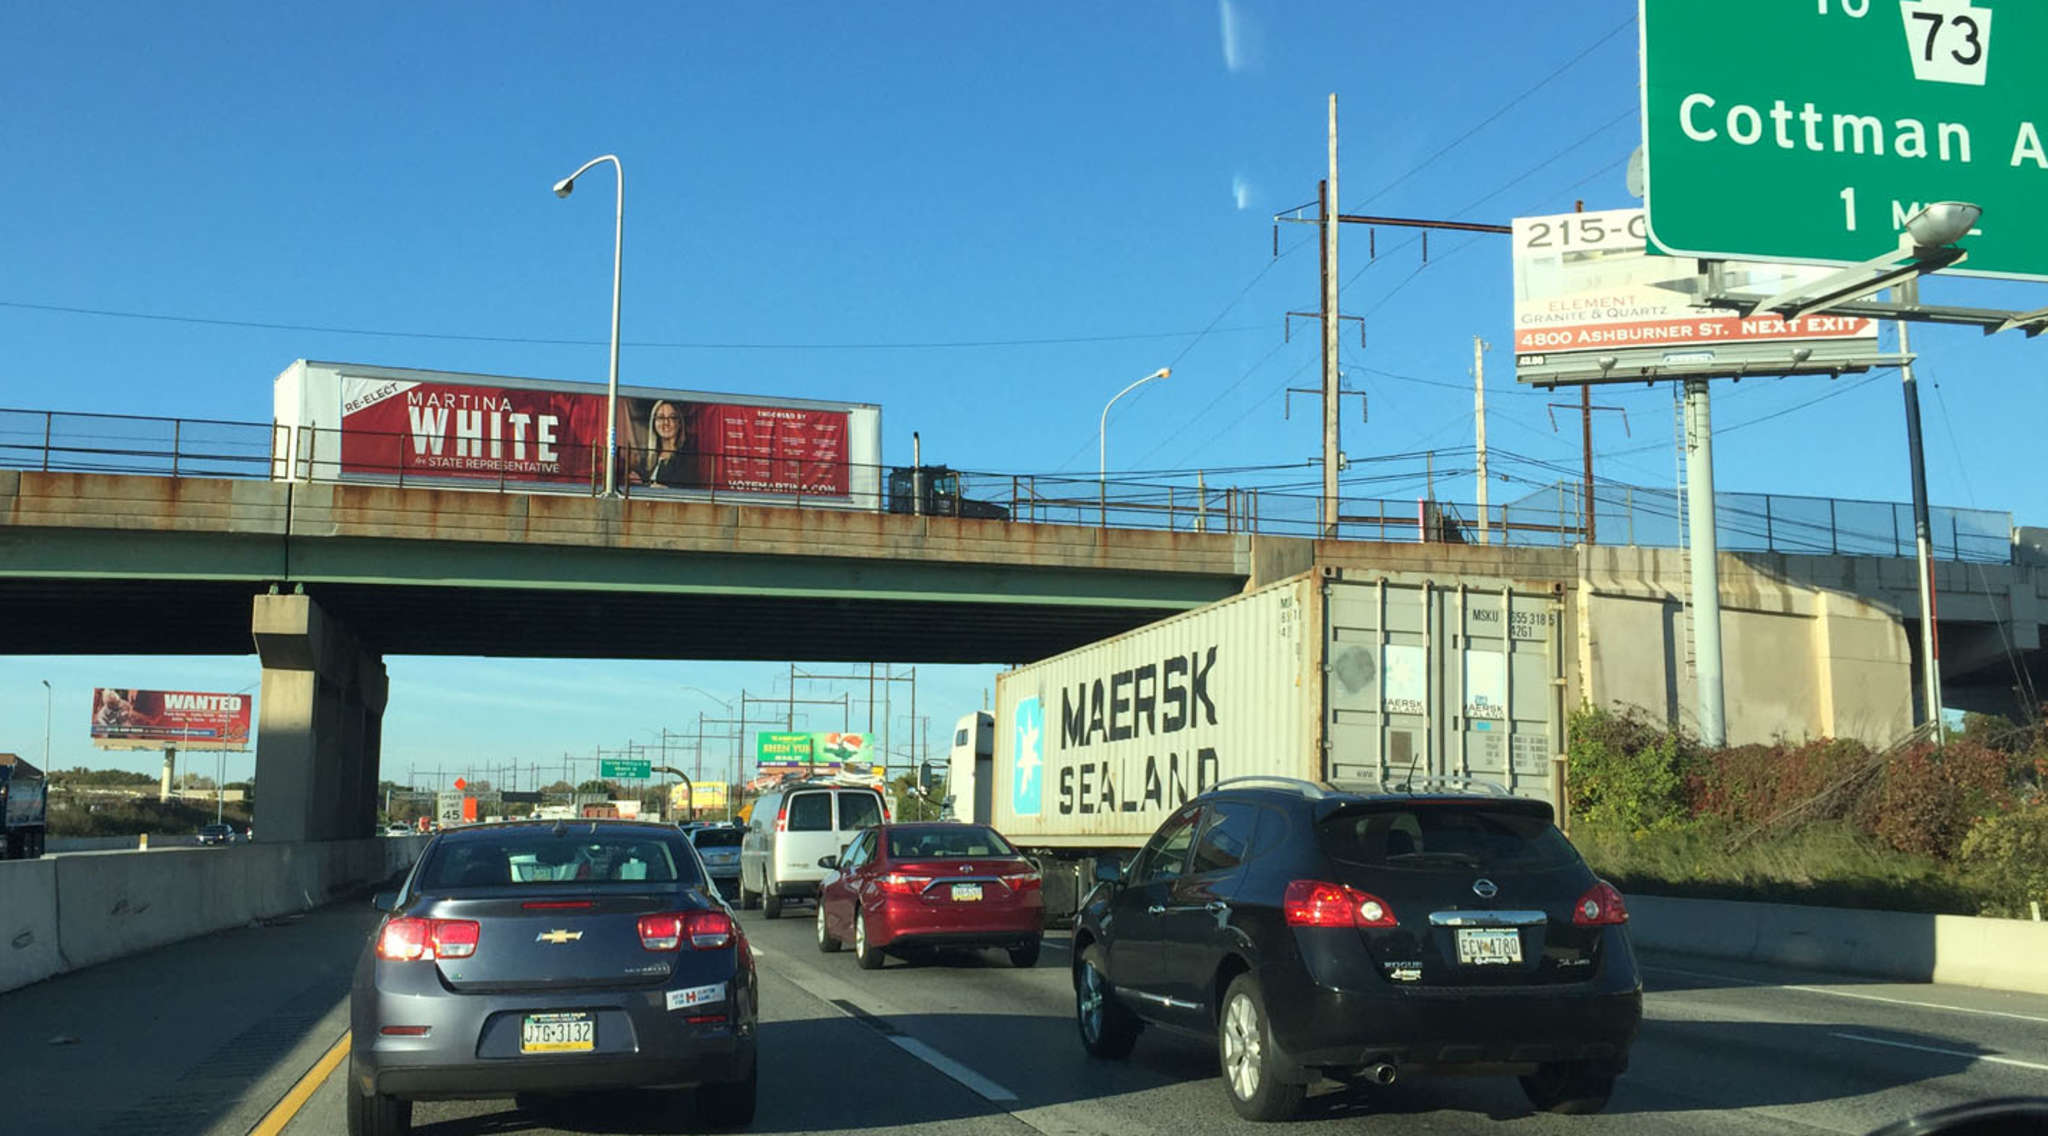 A Clout tipster sent in this photo of a tractor-trailer carrying a sign for State Rep. Martina White parked on the Ashburner Street overpass in Holmesburg.